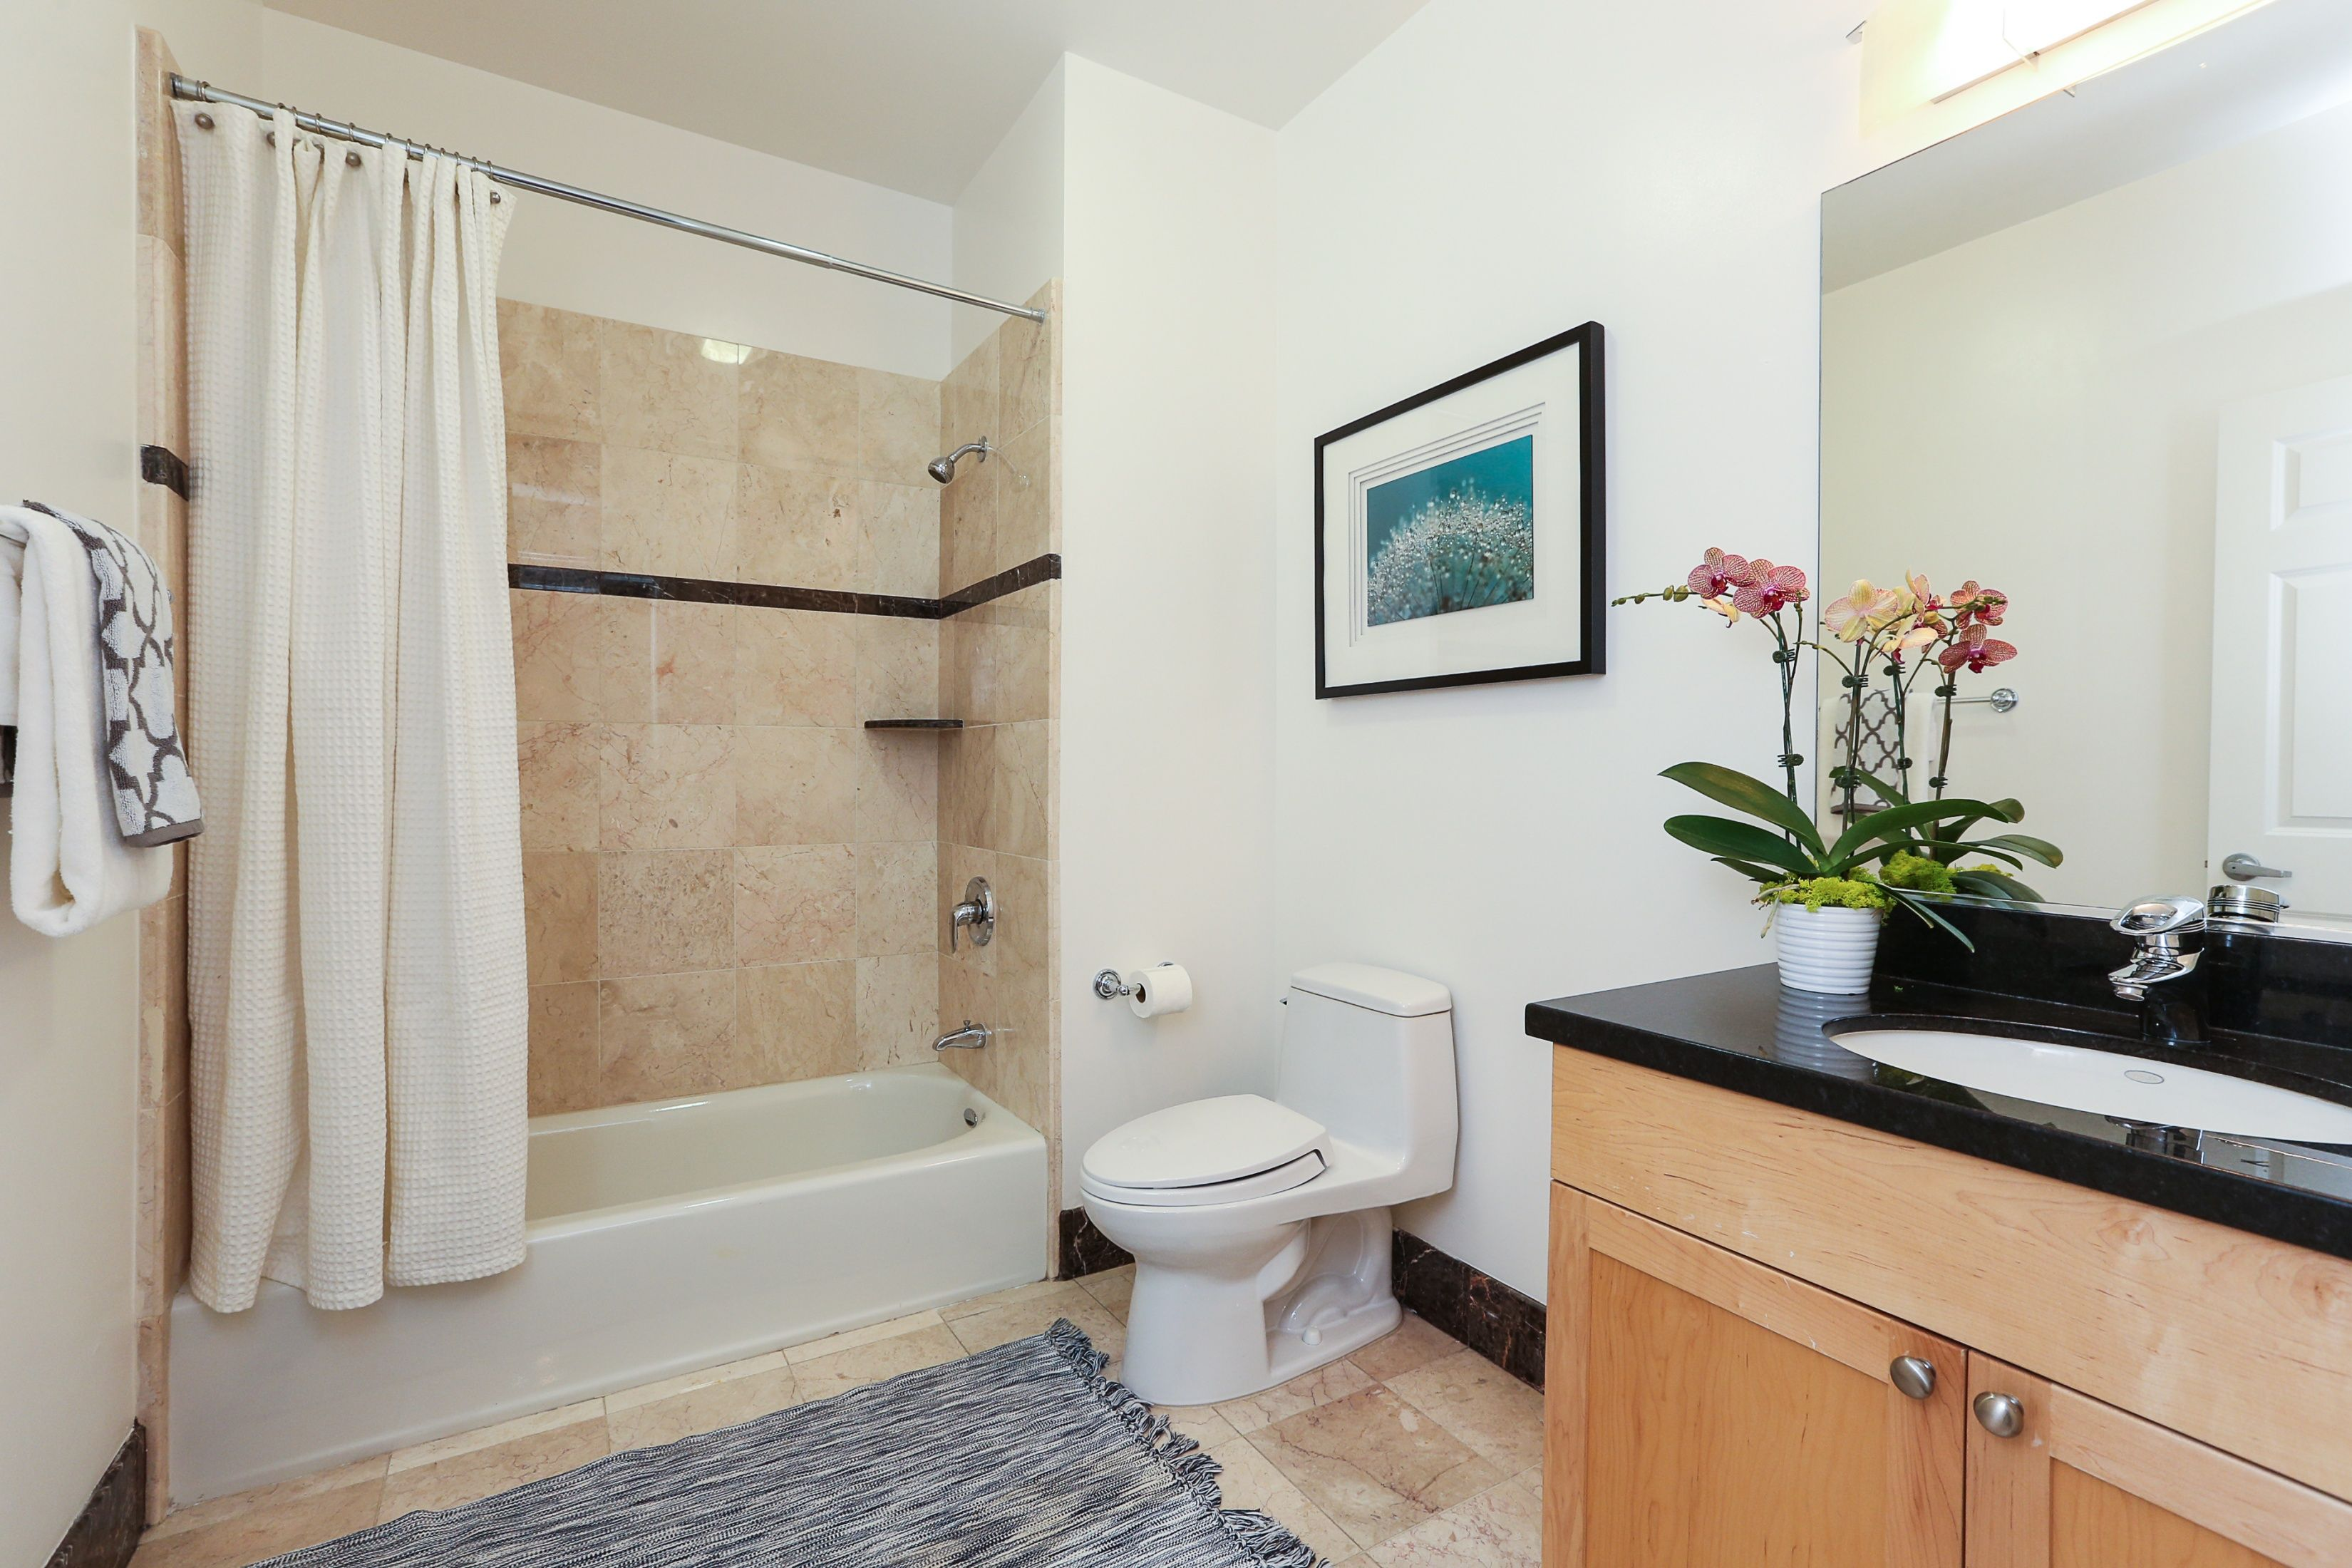 Updated bath w/ tub & shower combo @ 199 Tiffany Ave #401. 2BR/2BA ...